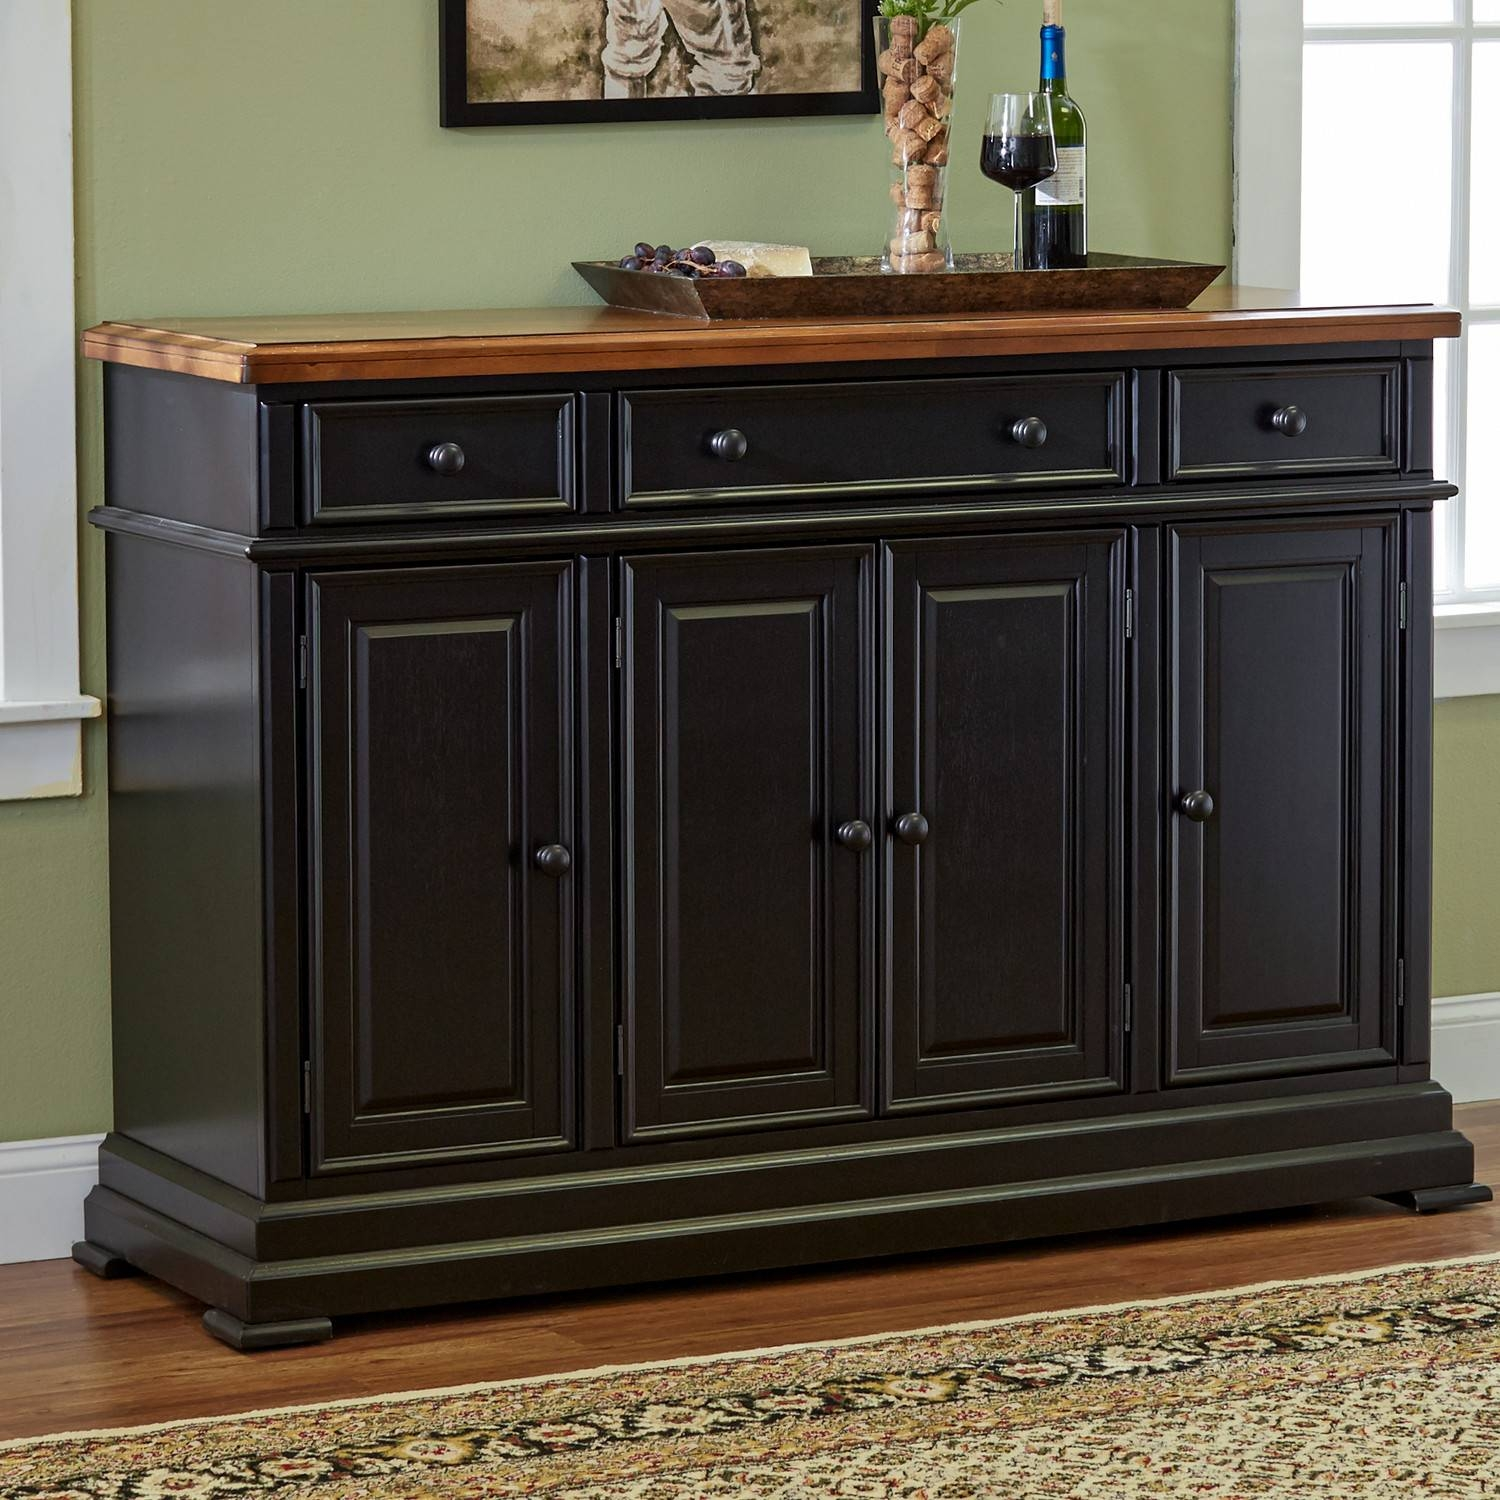 Furniture: White Sideboard Buffet With Unique Black Table Lamp And Pertaining To Most Current Black Buffet Sideboards (#6 of 15)